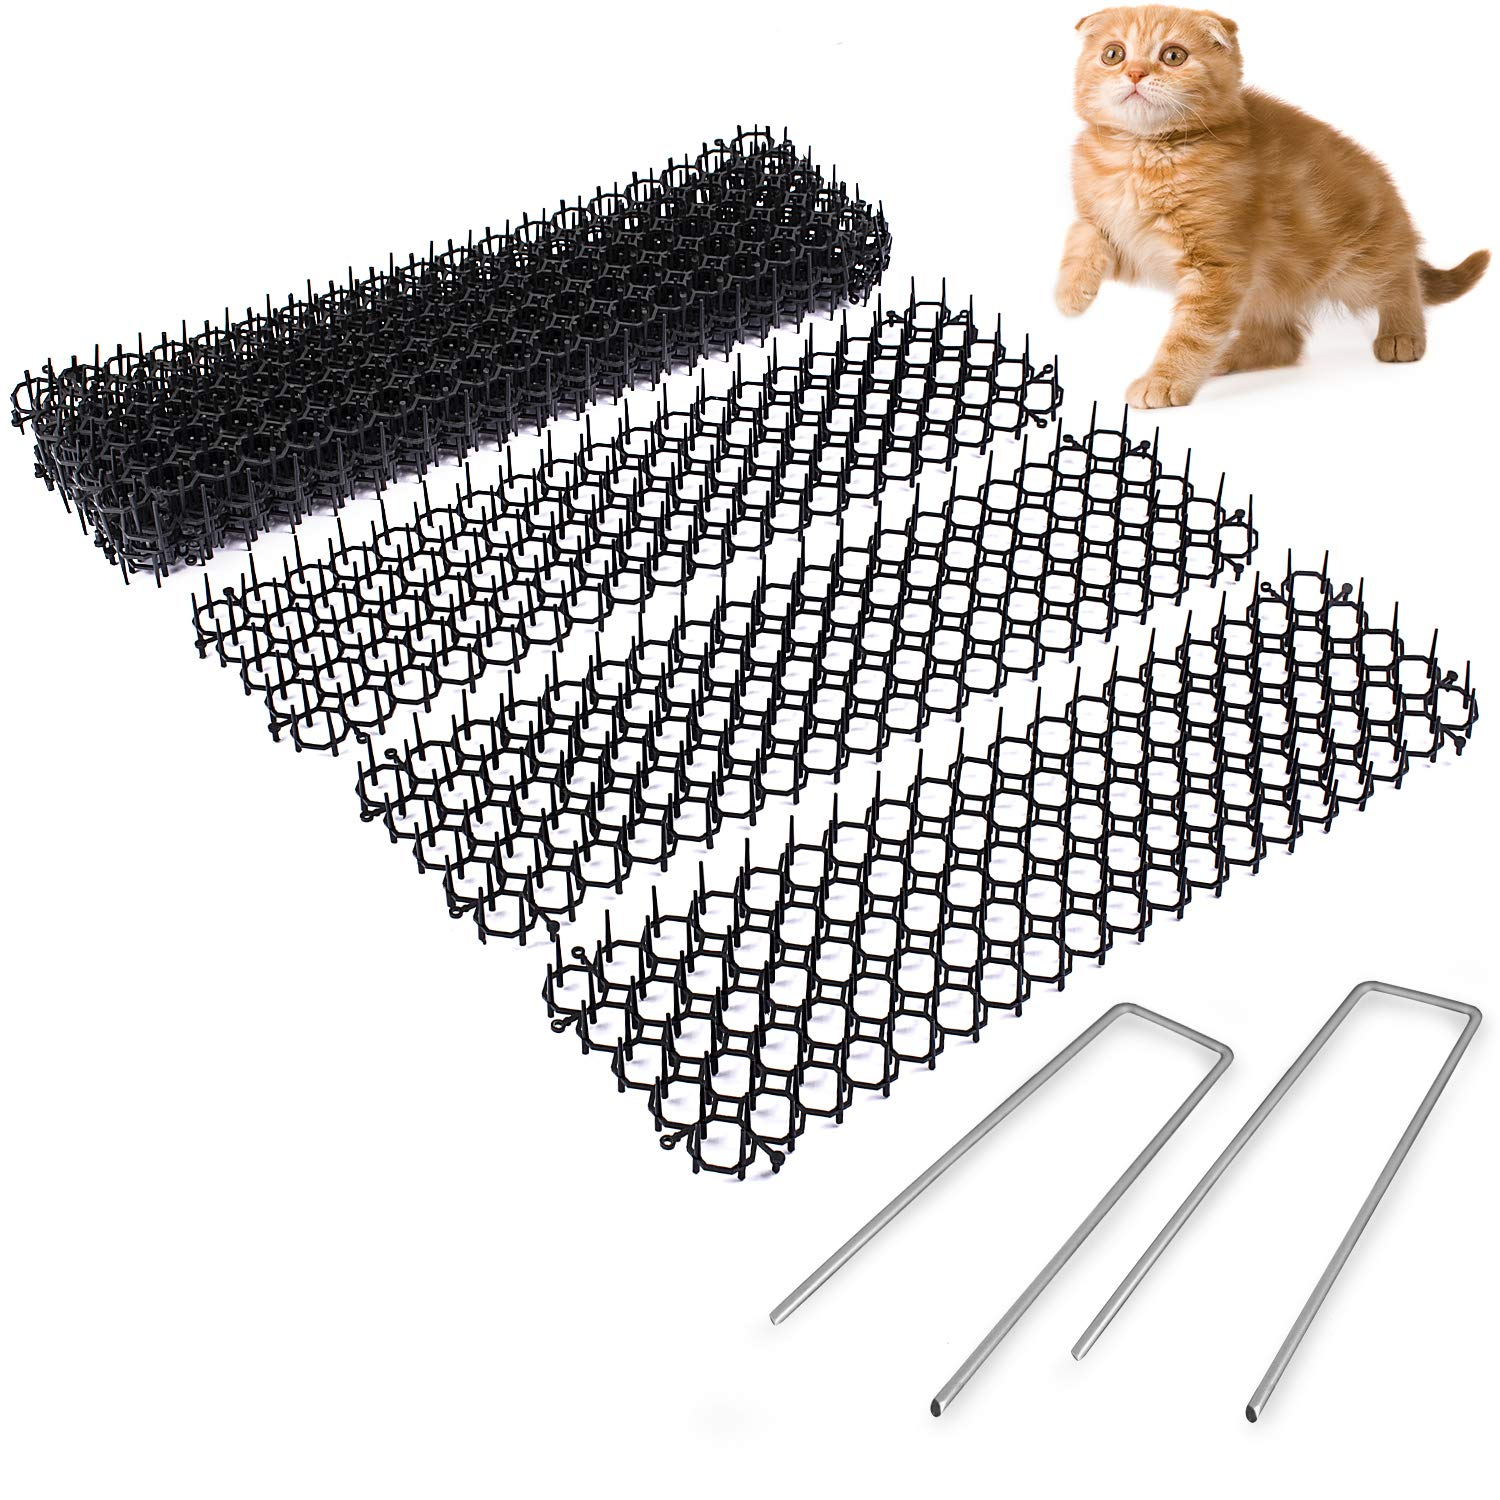 Abco Tech Cat Scat Spike (10 Strips) – Gentle Pet Deterrent for Cats, Dogs and More – Non-Toxic Humane and Effective Repellent – Easy to Install – Includes 12 Garden Staples